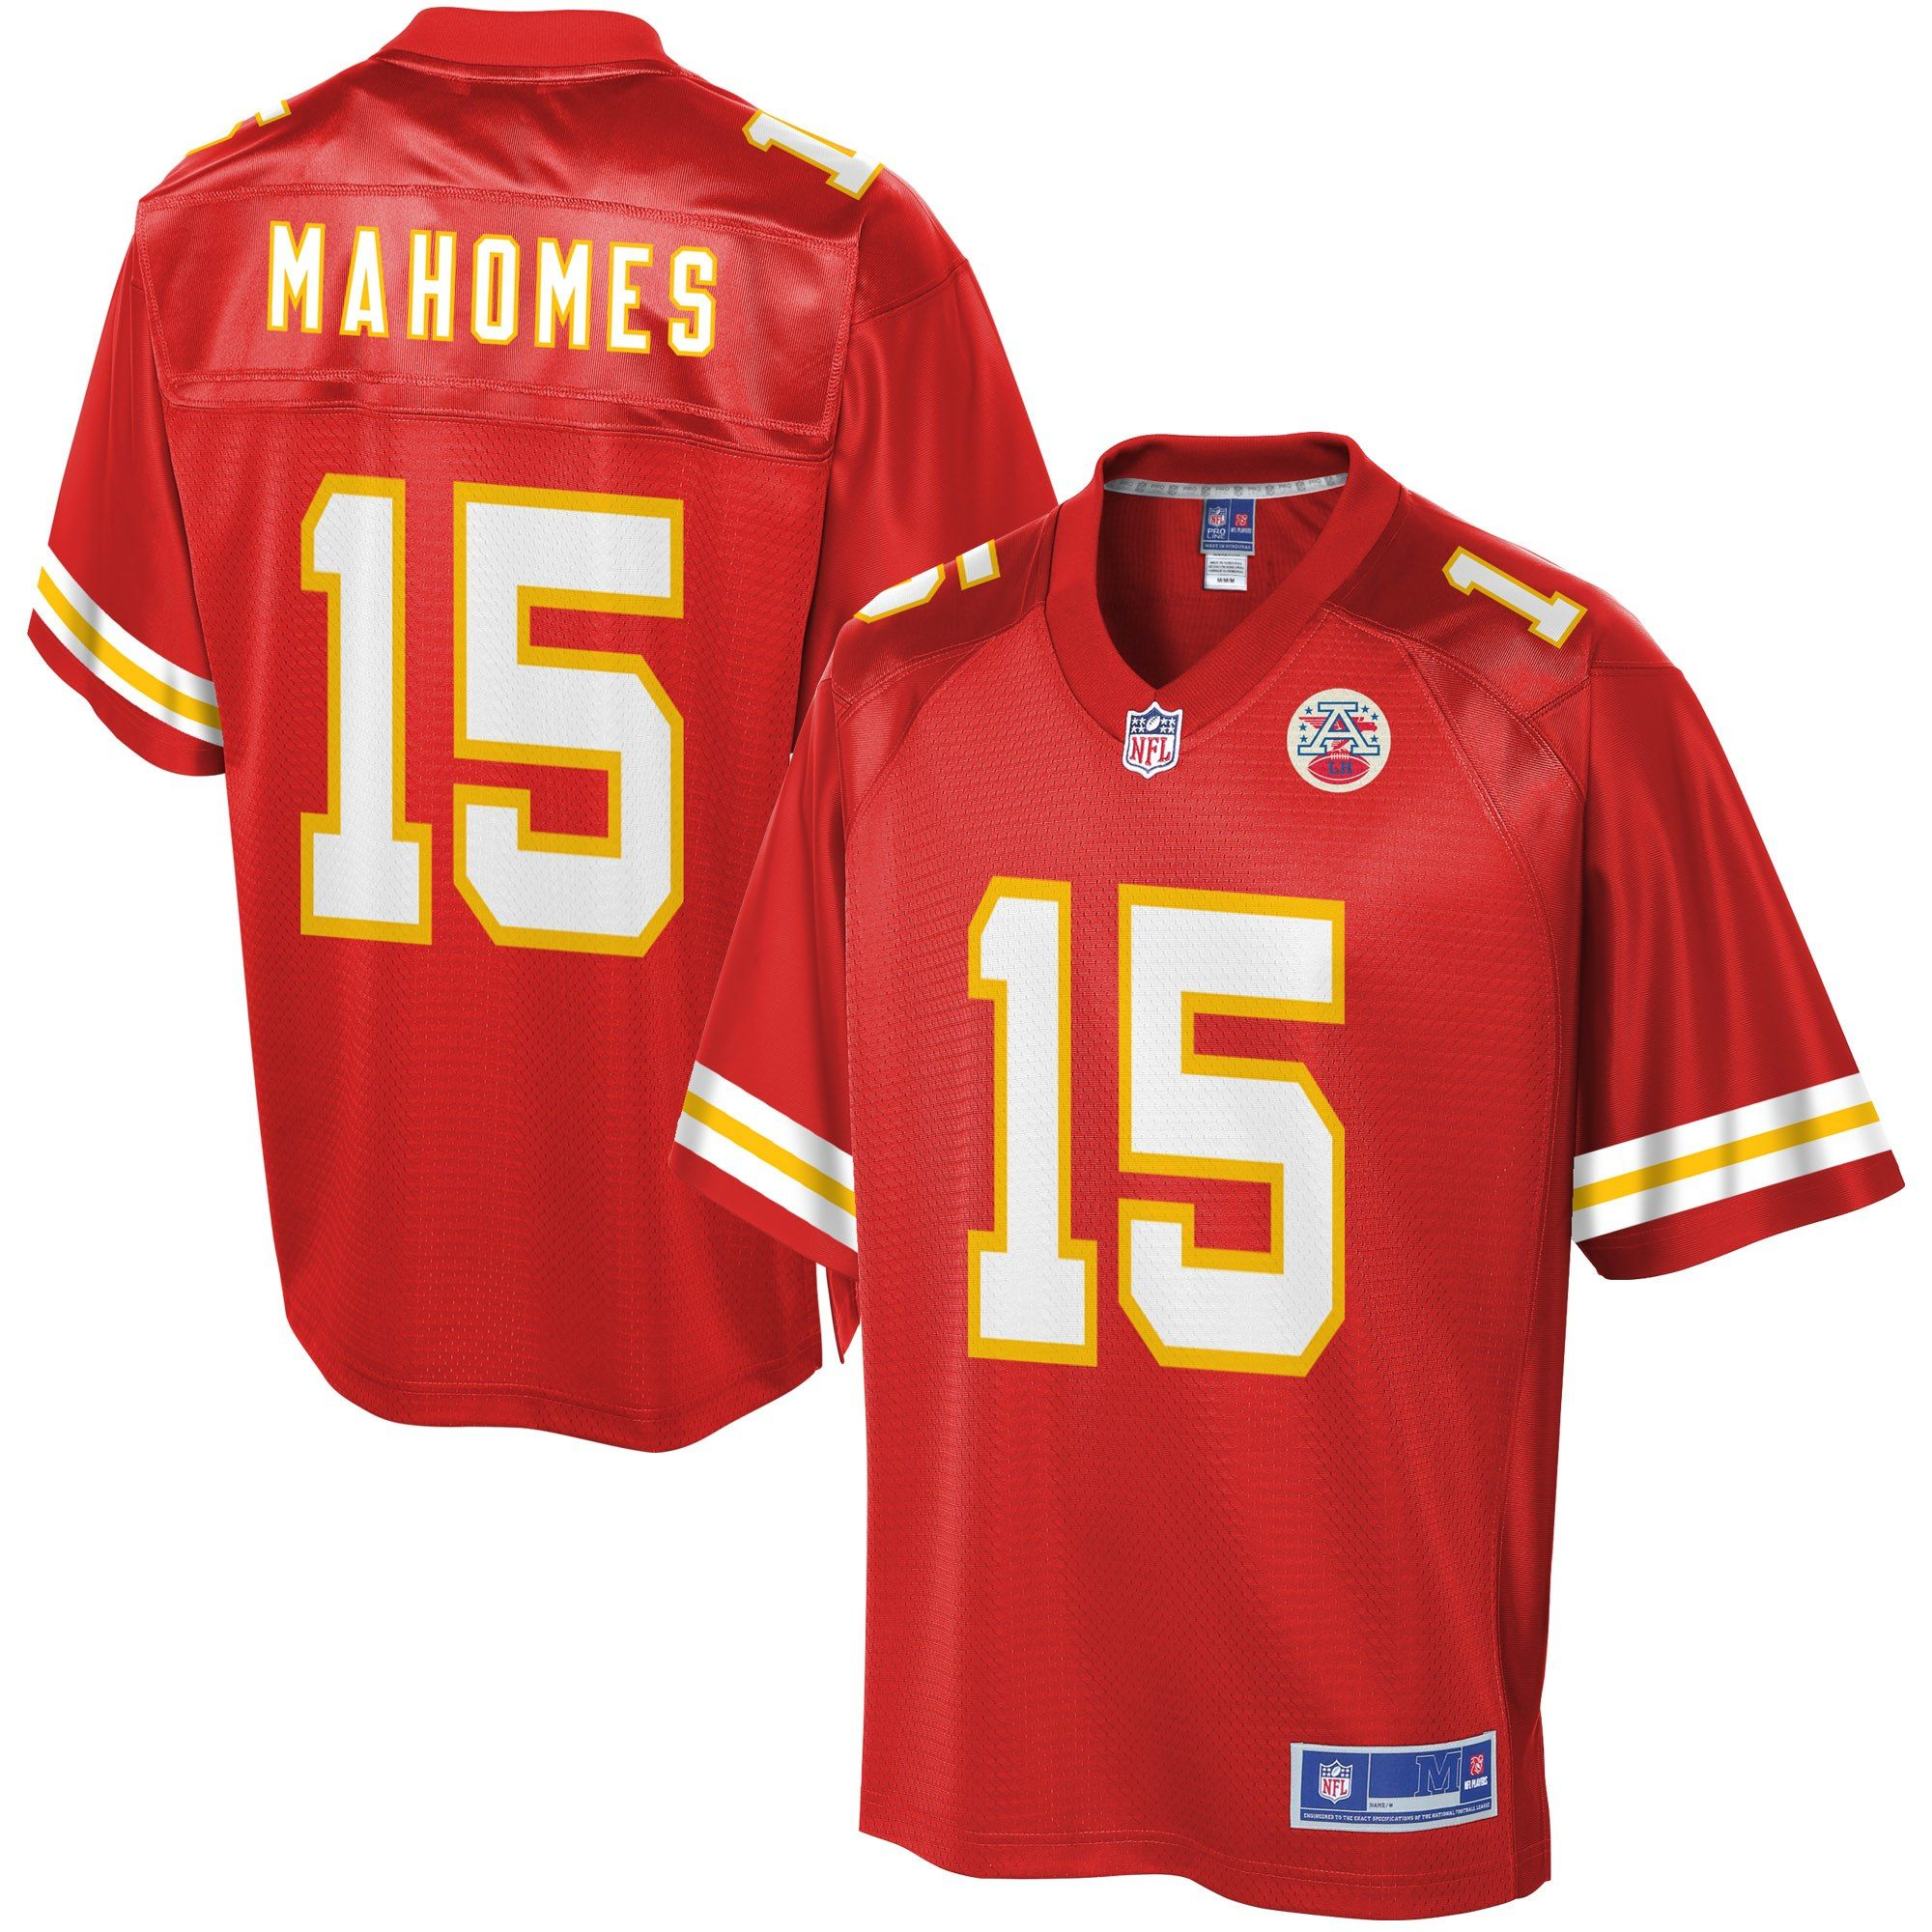 Men s Kansas City Chiefs Patrick Mahomes NFL Pro Line Red Jersey size XL 3d61c88ac